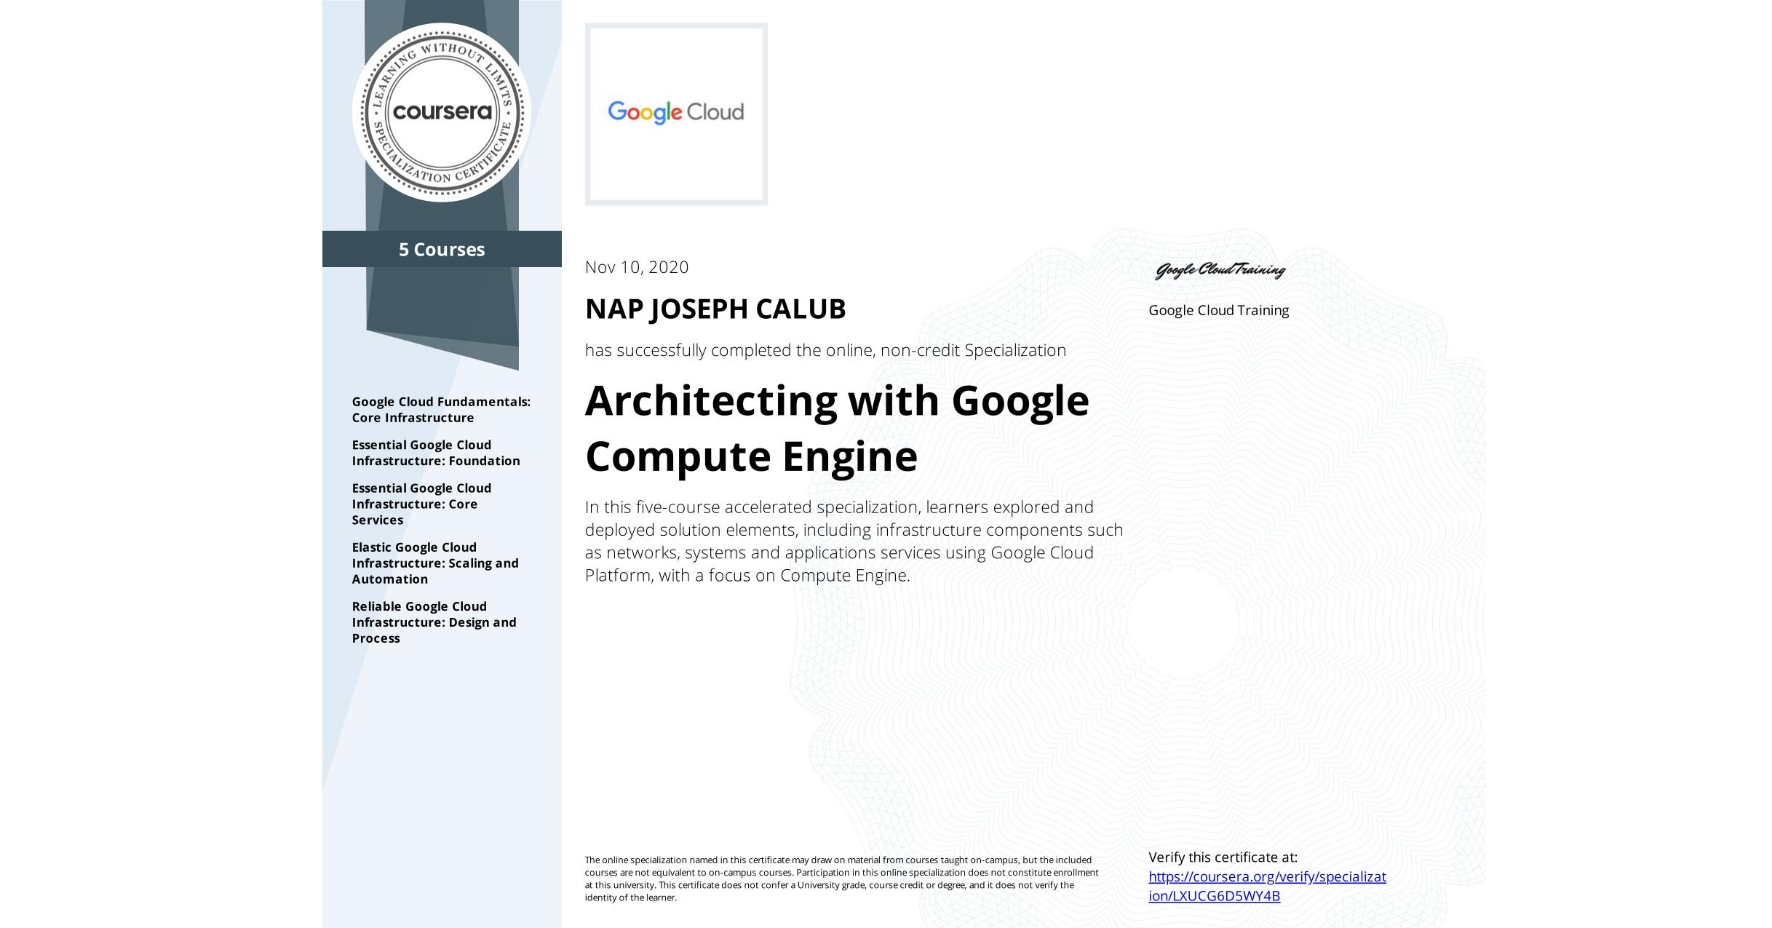 View certificate for NAP JOSEPH  CALUB, Architecting with Google Compute Engine, offered through Coursera. In this five-course accelerated specialization, learners explored and deployed solution elements, including infrastructure components such as networks, systems and applications services using Google Cloud Platform, with a focus on Compute Engine.